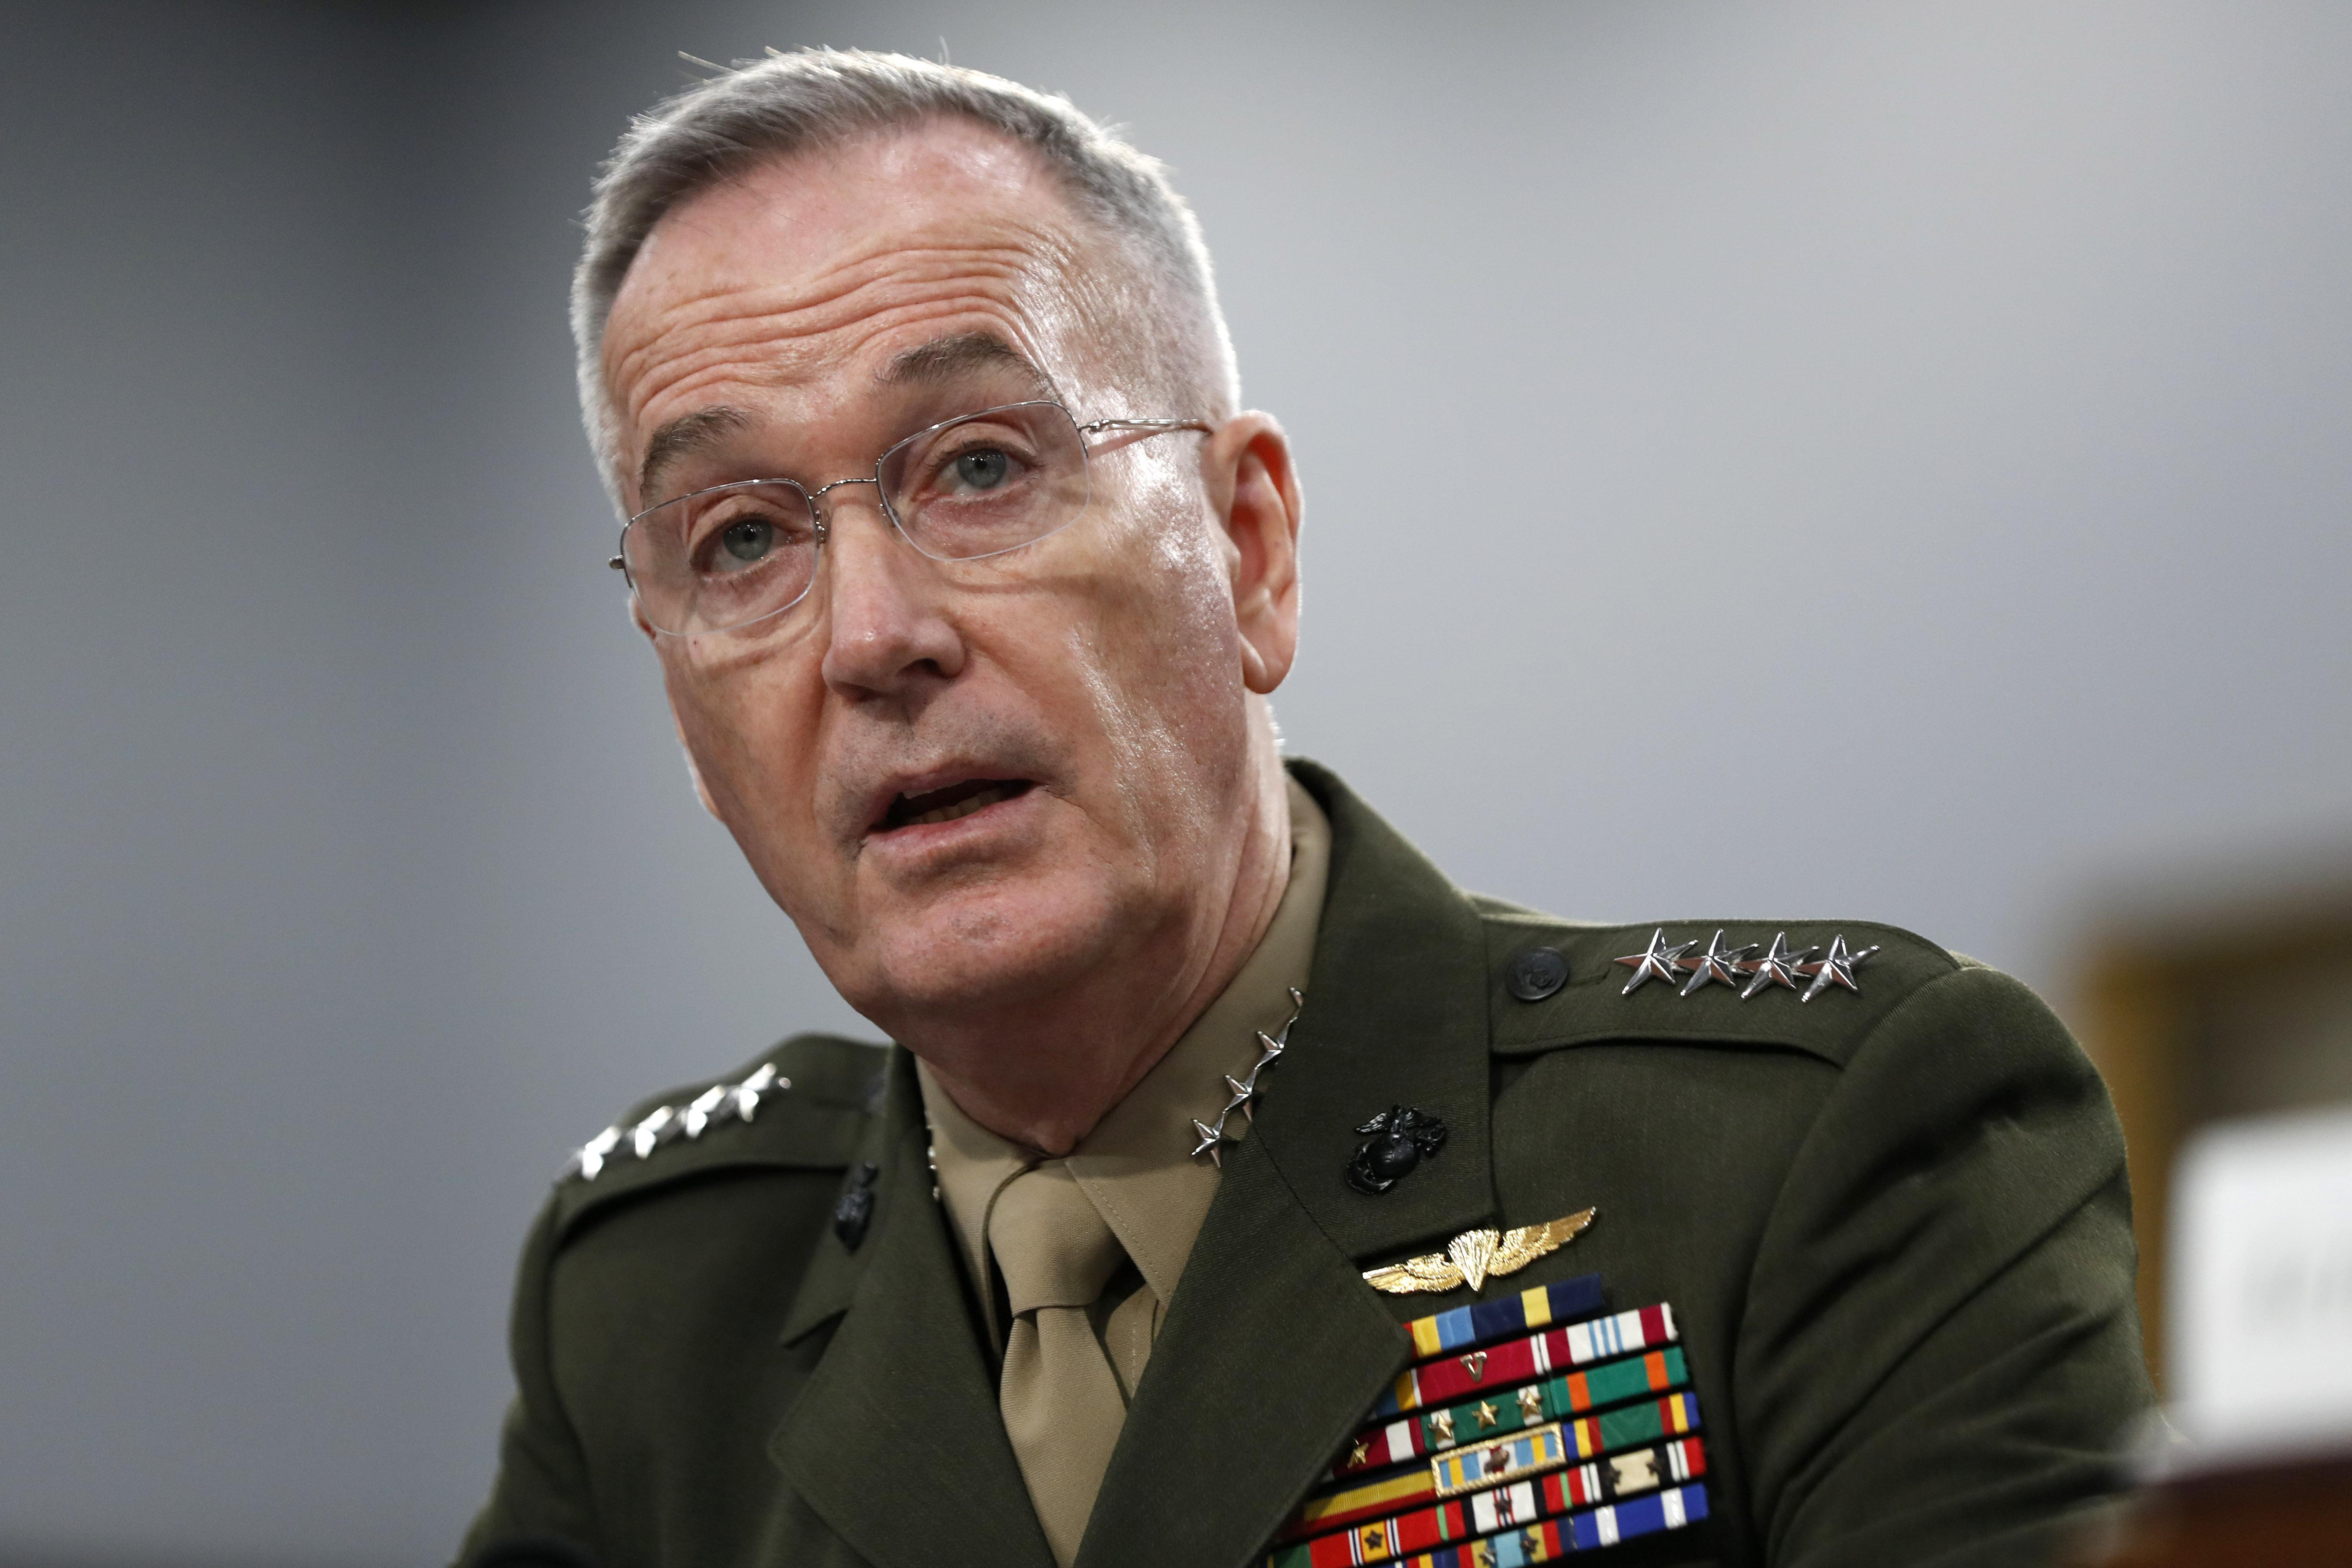 Joseph Dunford, former Joint Chiefs chair, joins Lockheed Martin board of directors